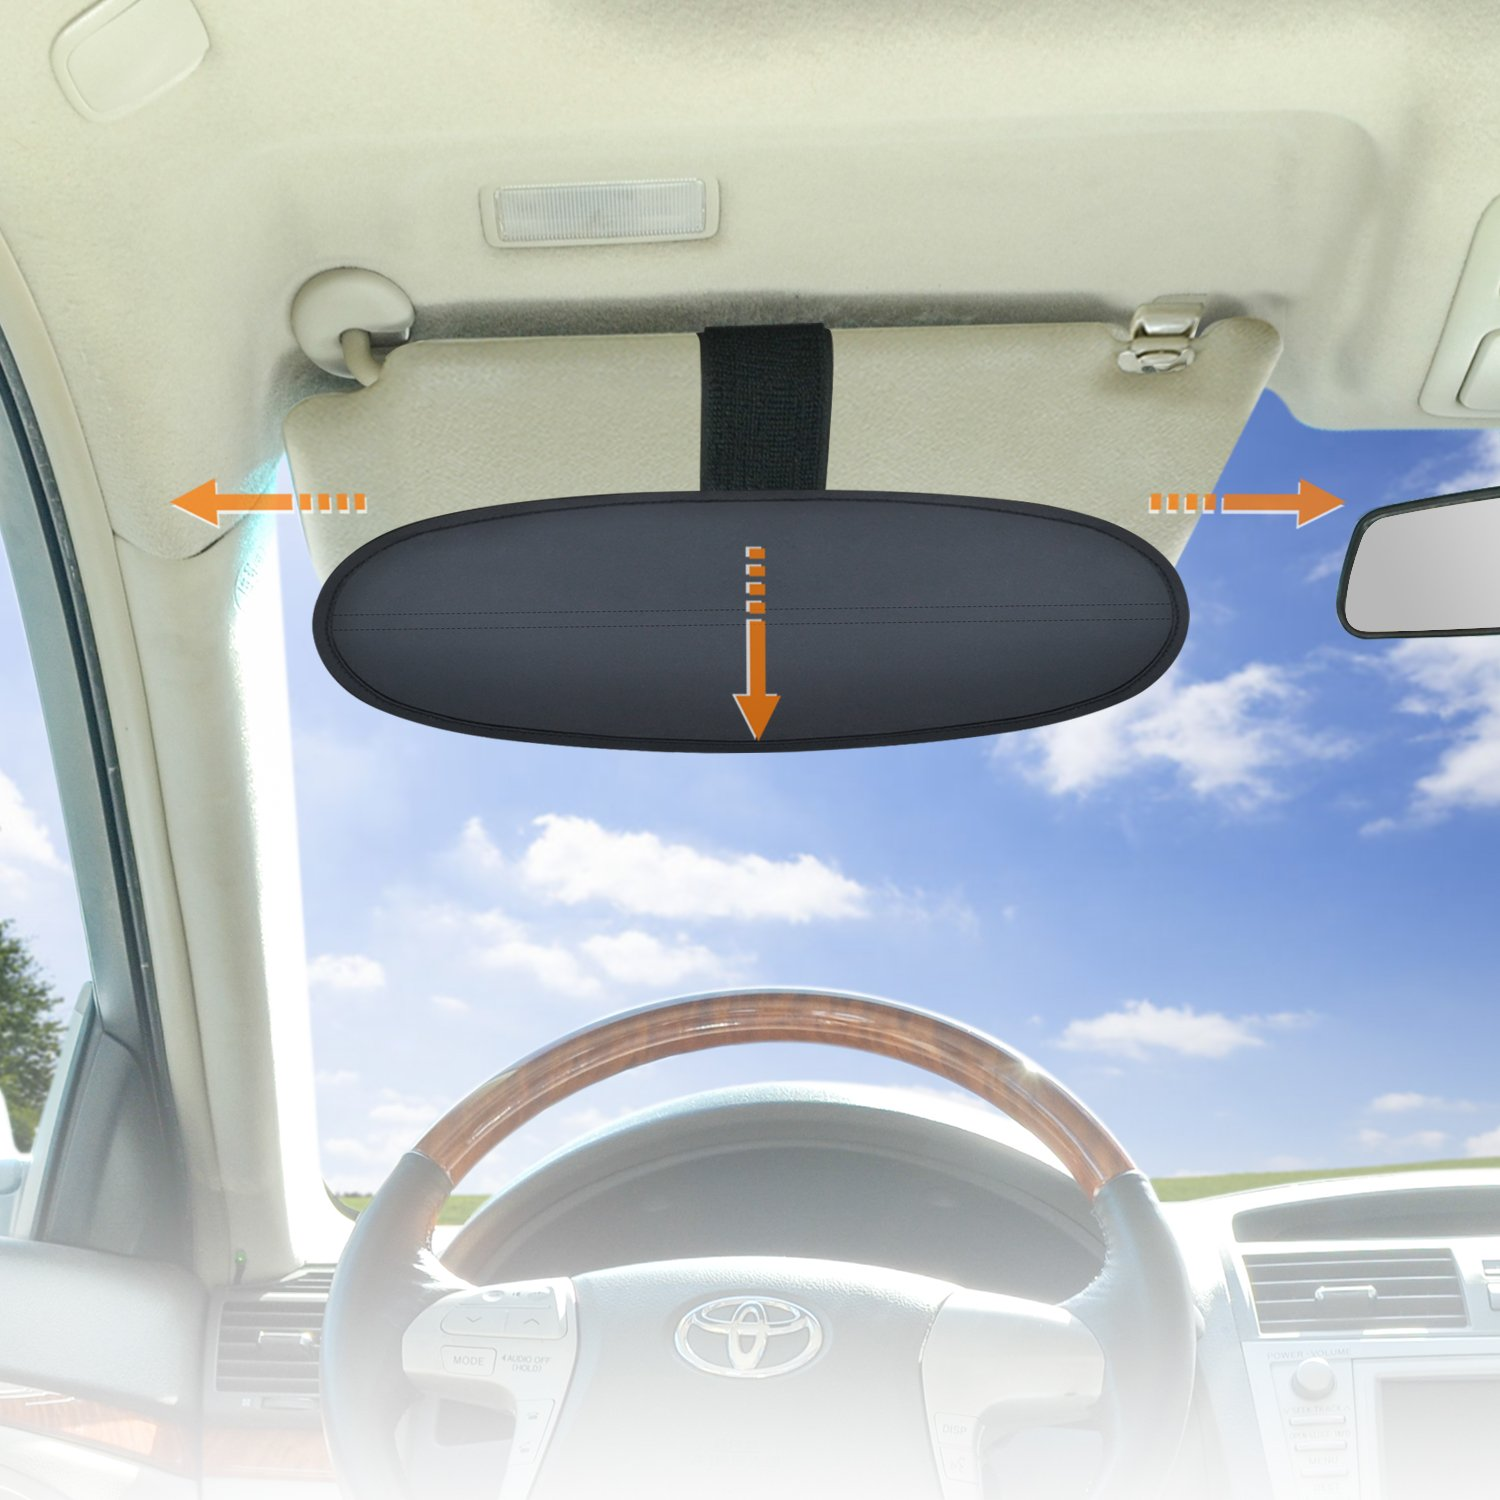 Silver WANPOOL Anti-Glare Car Visor Sunshade Extender for Drivers or Front Seat Passengers 1 Piece